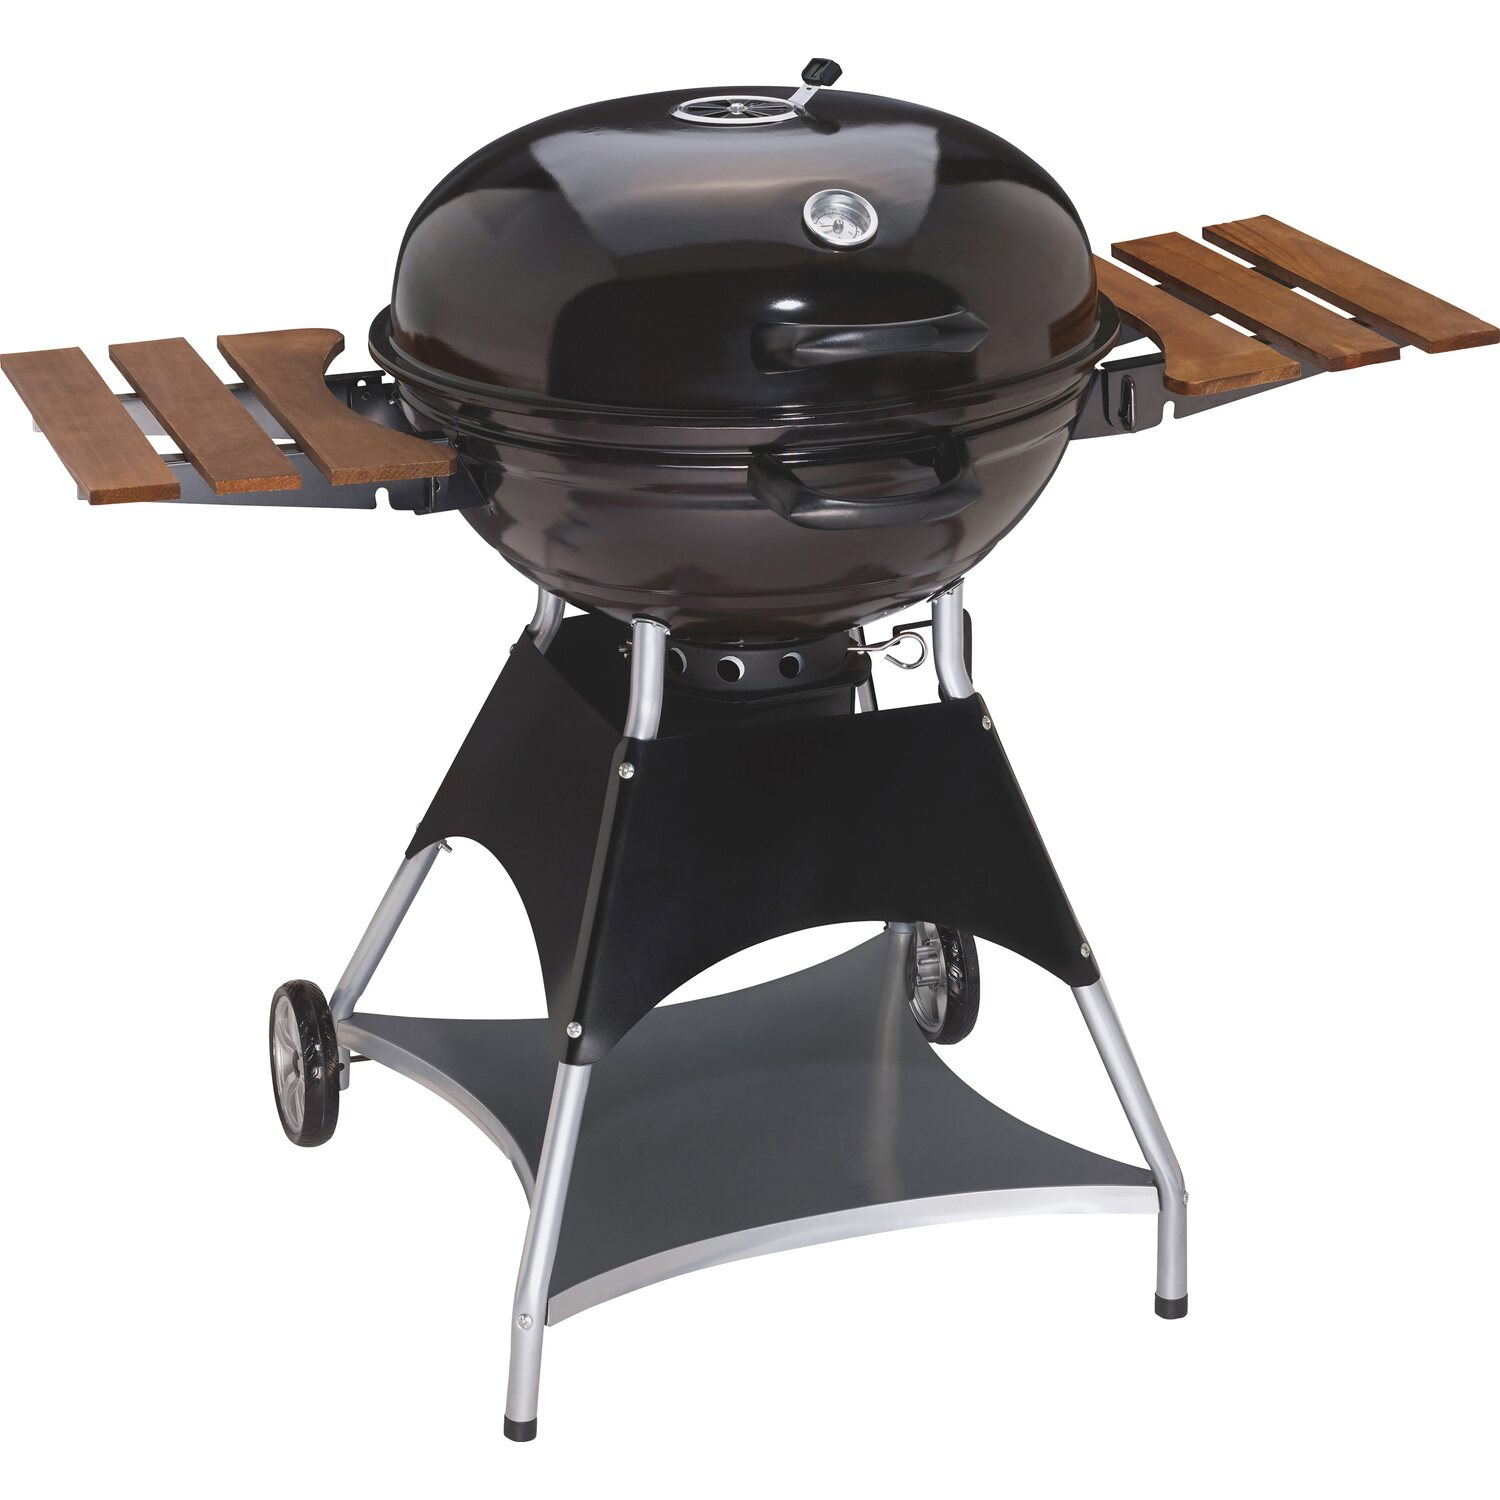 obi barbecue a carbone premium cleveland xl 57 cm acquista